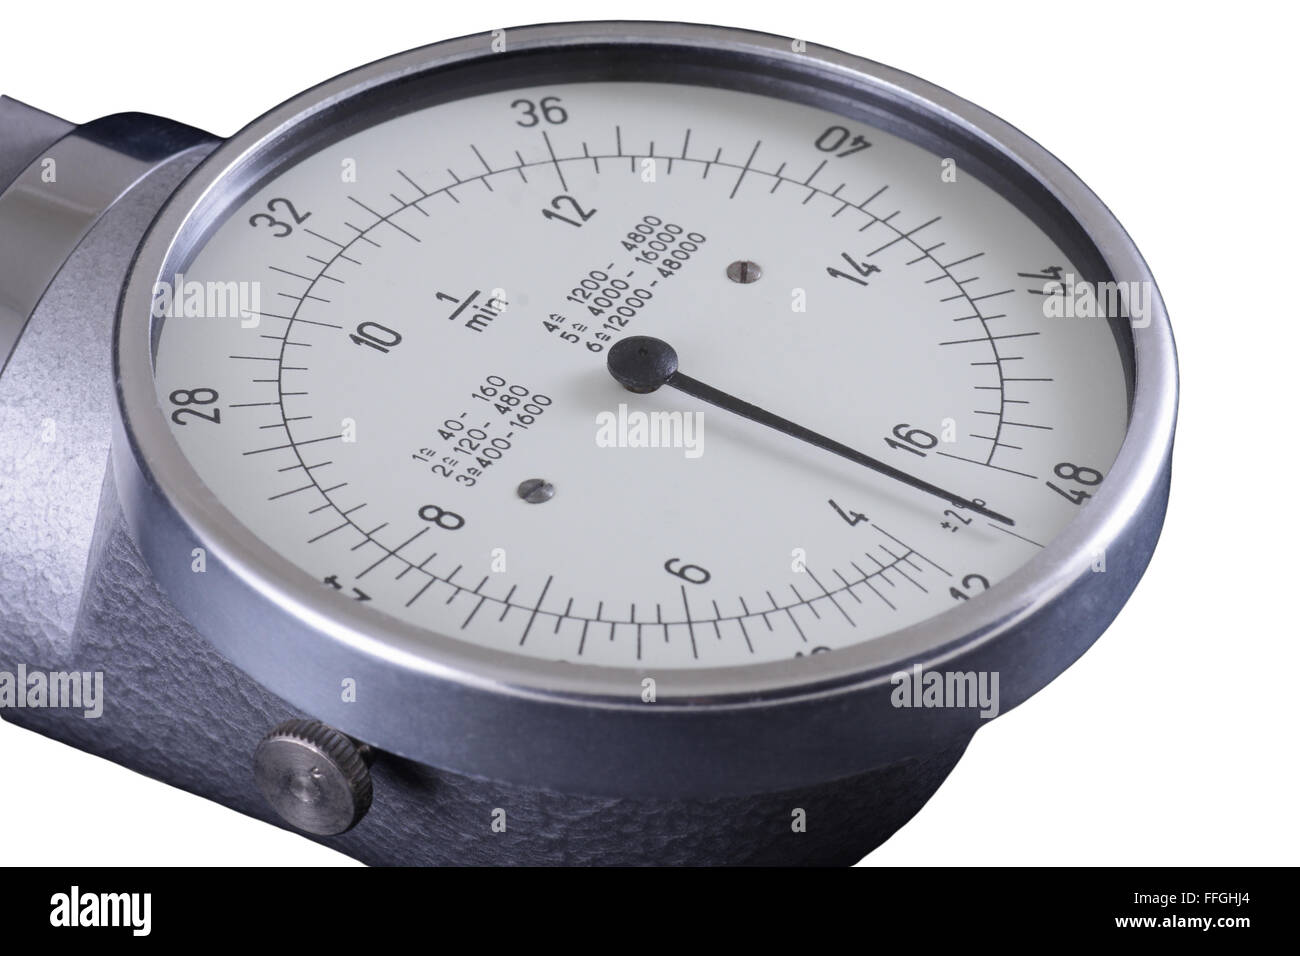 Tachometer, old RPM counter showing zero, isolated in white - Stock Image